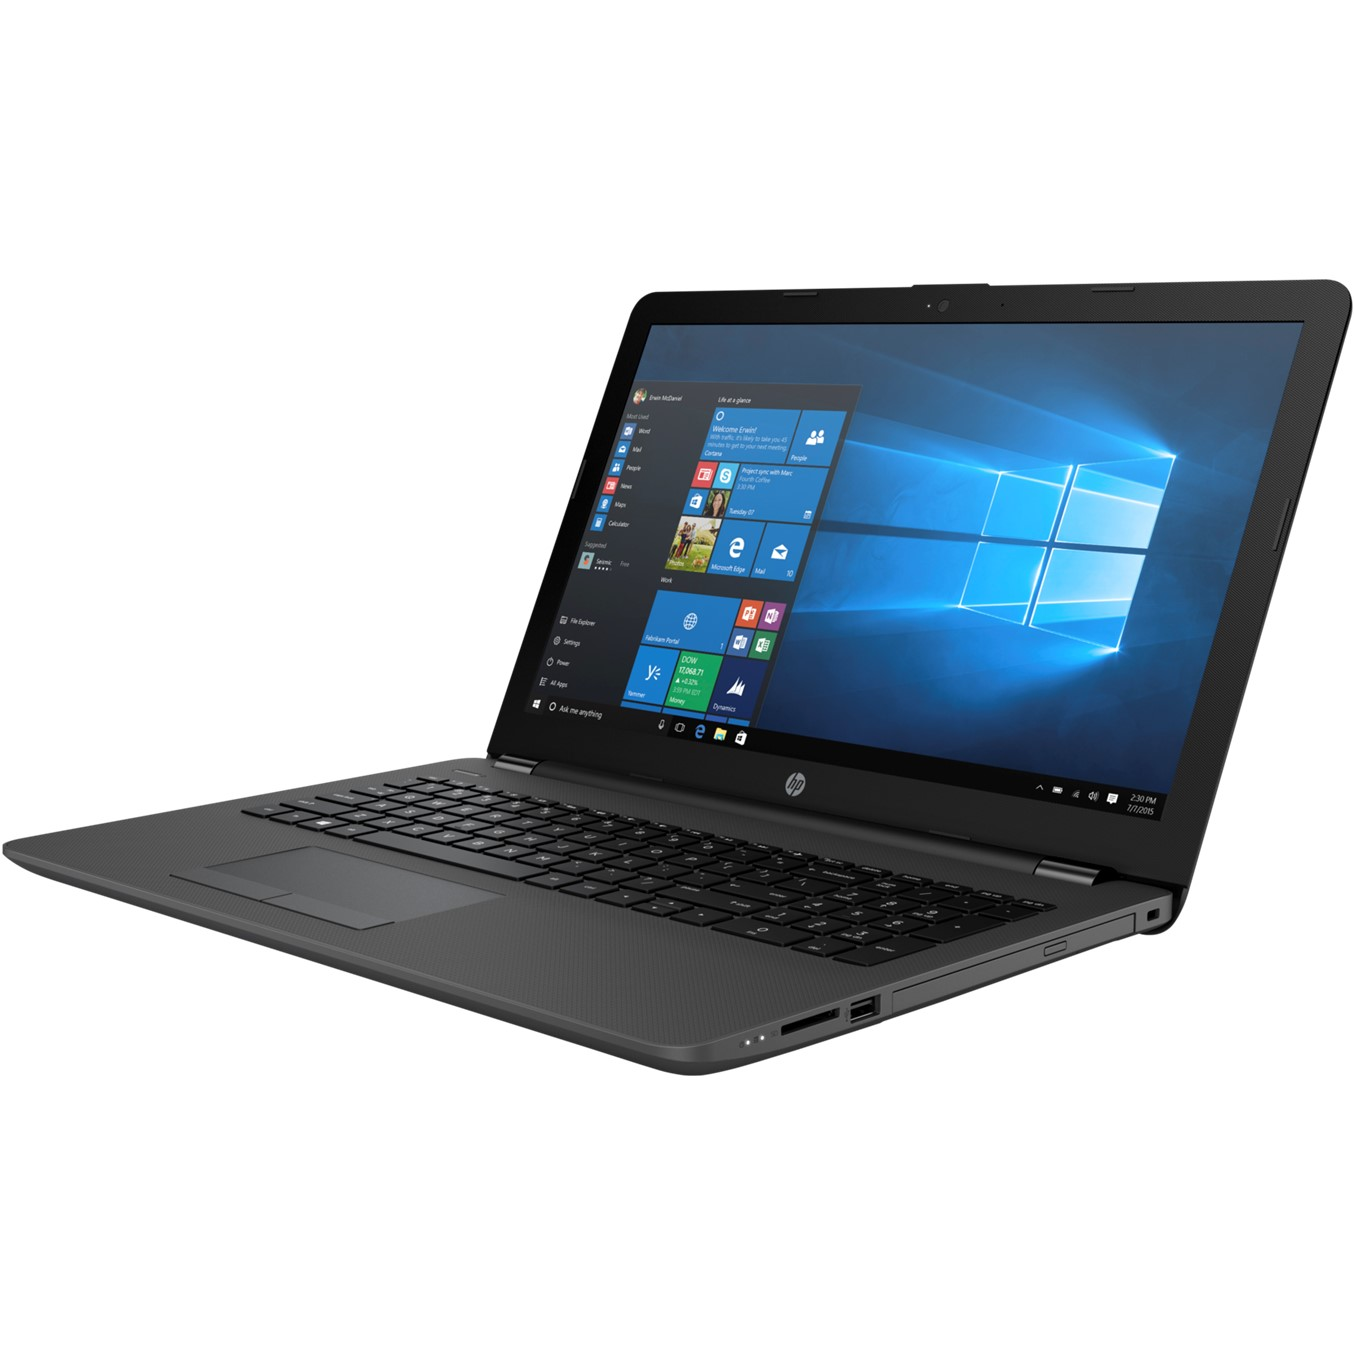 "PORTATIL HP 250 G7 CELERON N4000 15.6"" 8GB / SSD256GB / WIFI / BT / W10P"